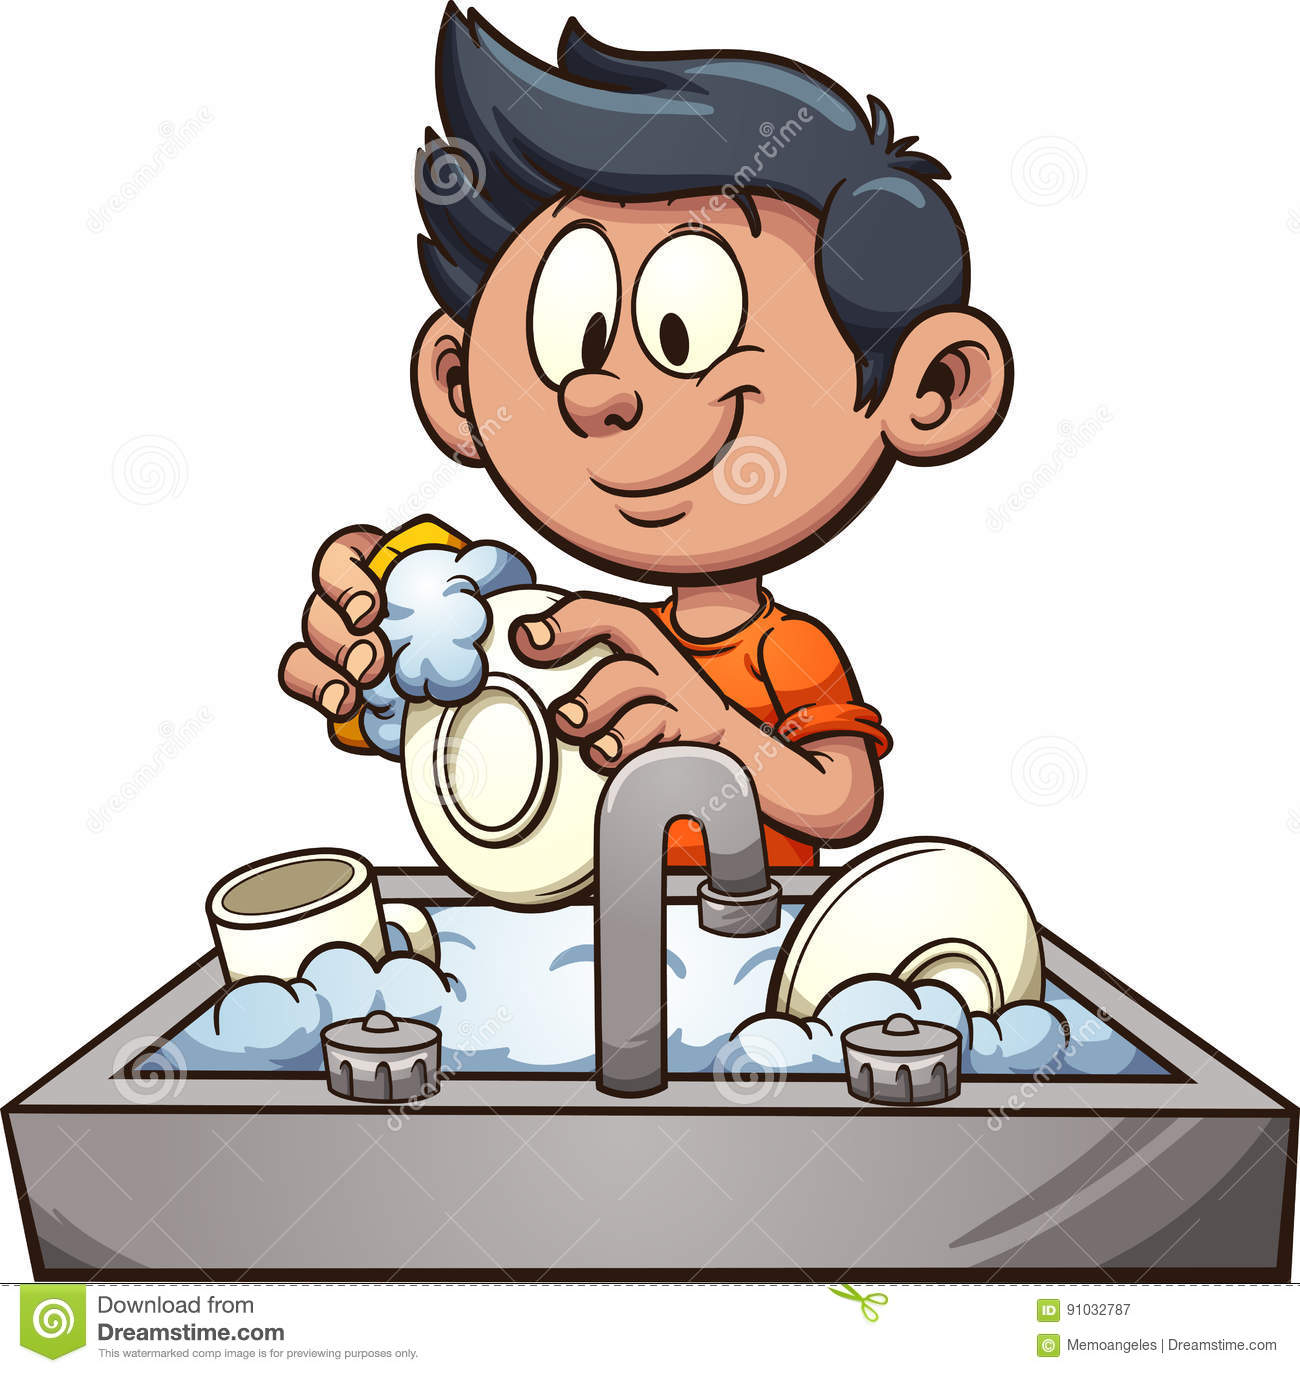 Kitchen Clean Up Cartoon: Boy Washing Dishes Stock Vector. Illustration Of Soap